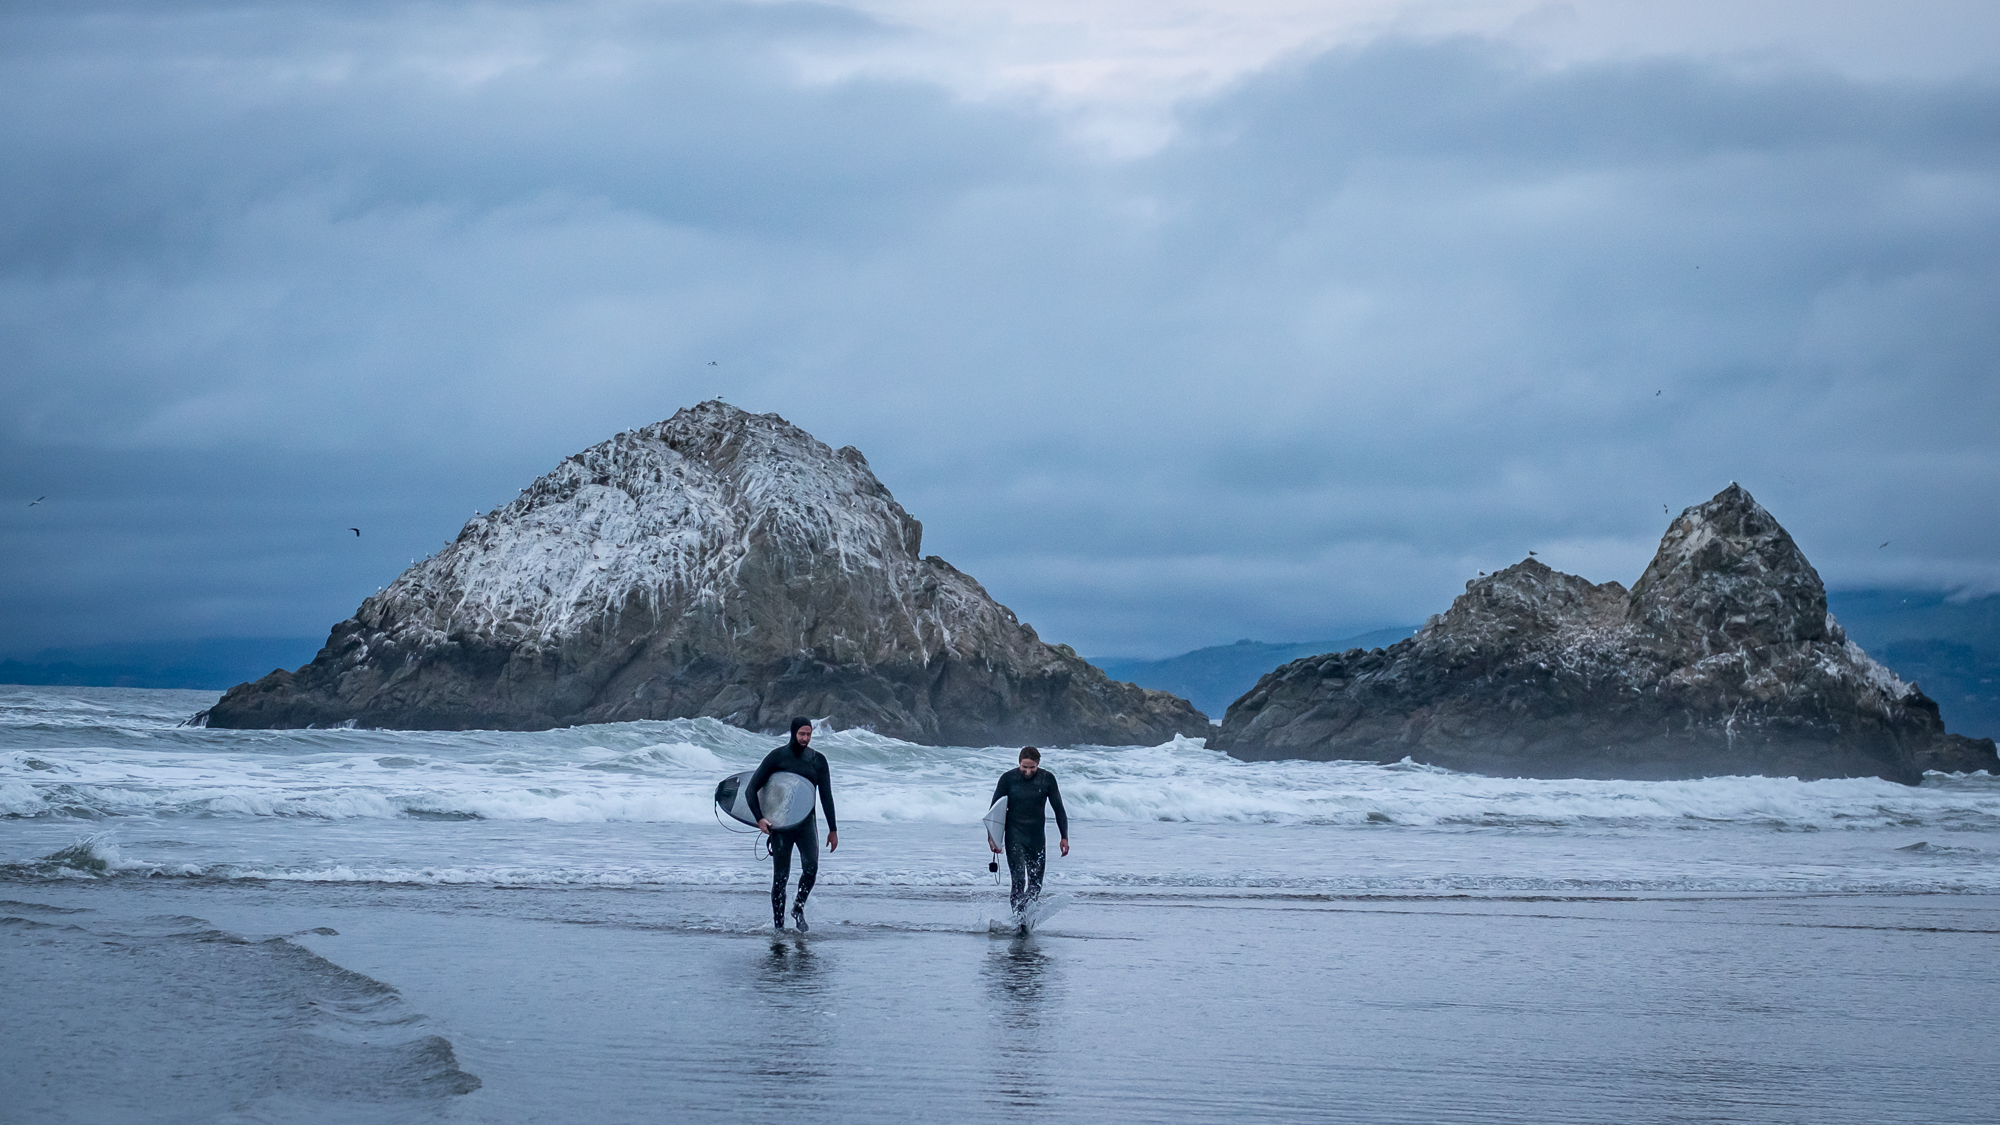 Surfers at Ocean Beach